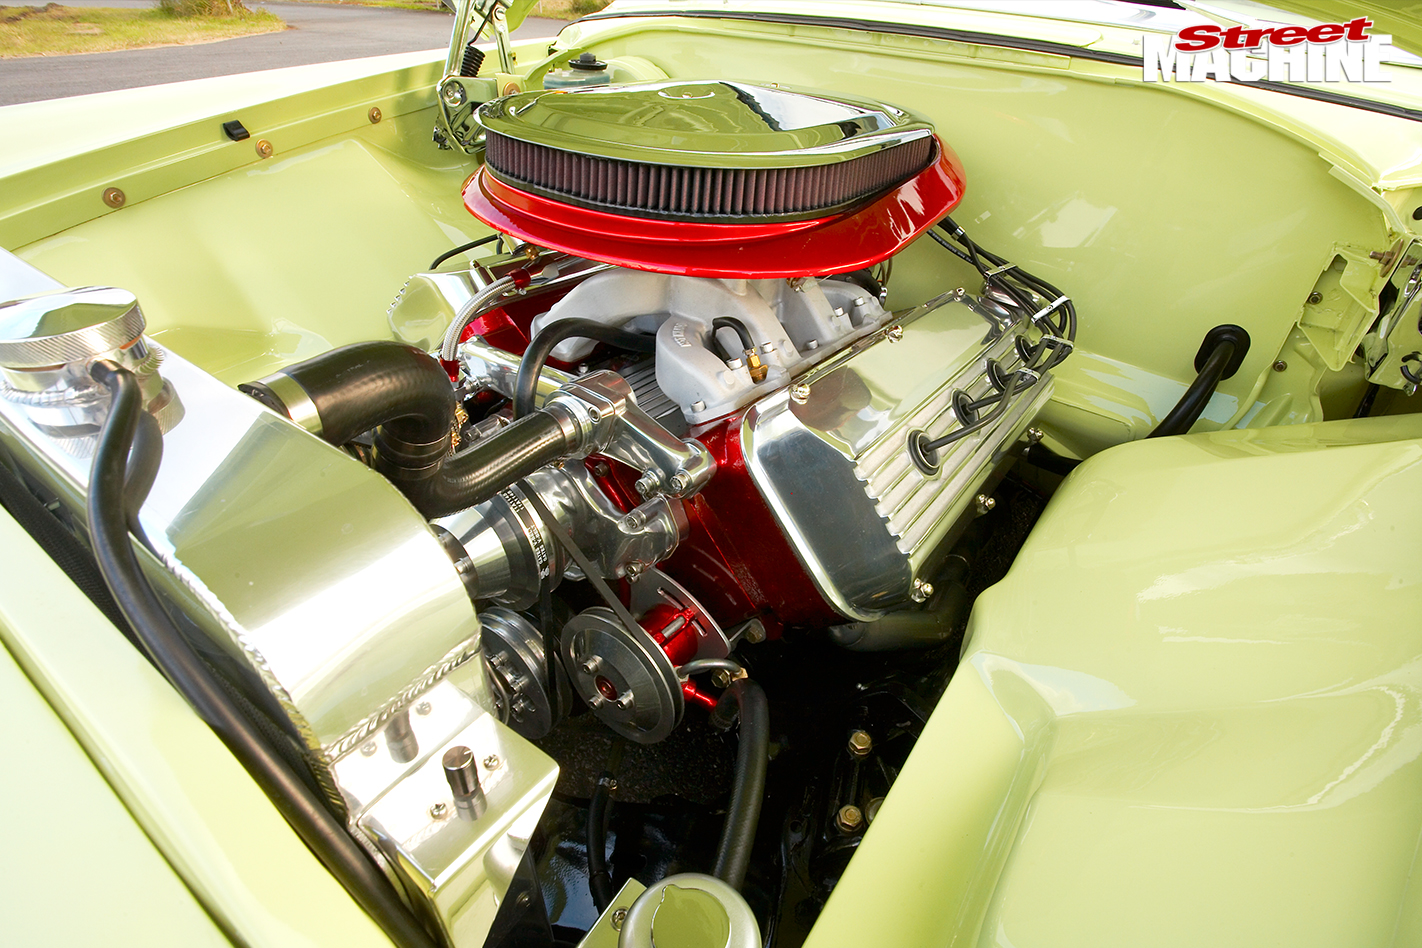 Desoto -engine -bay